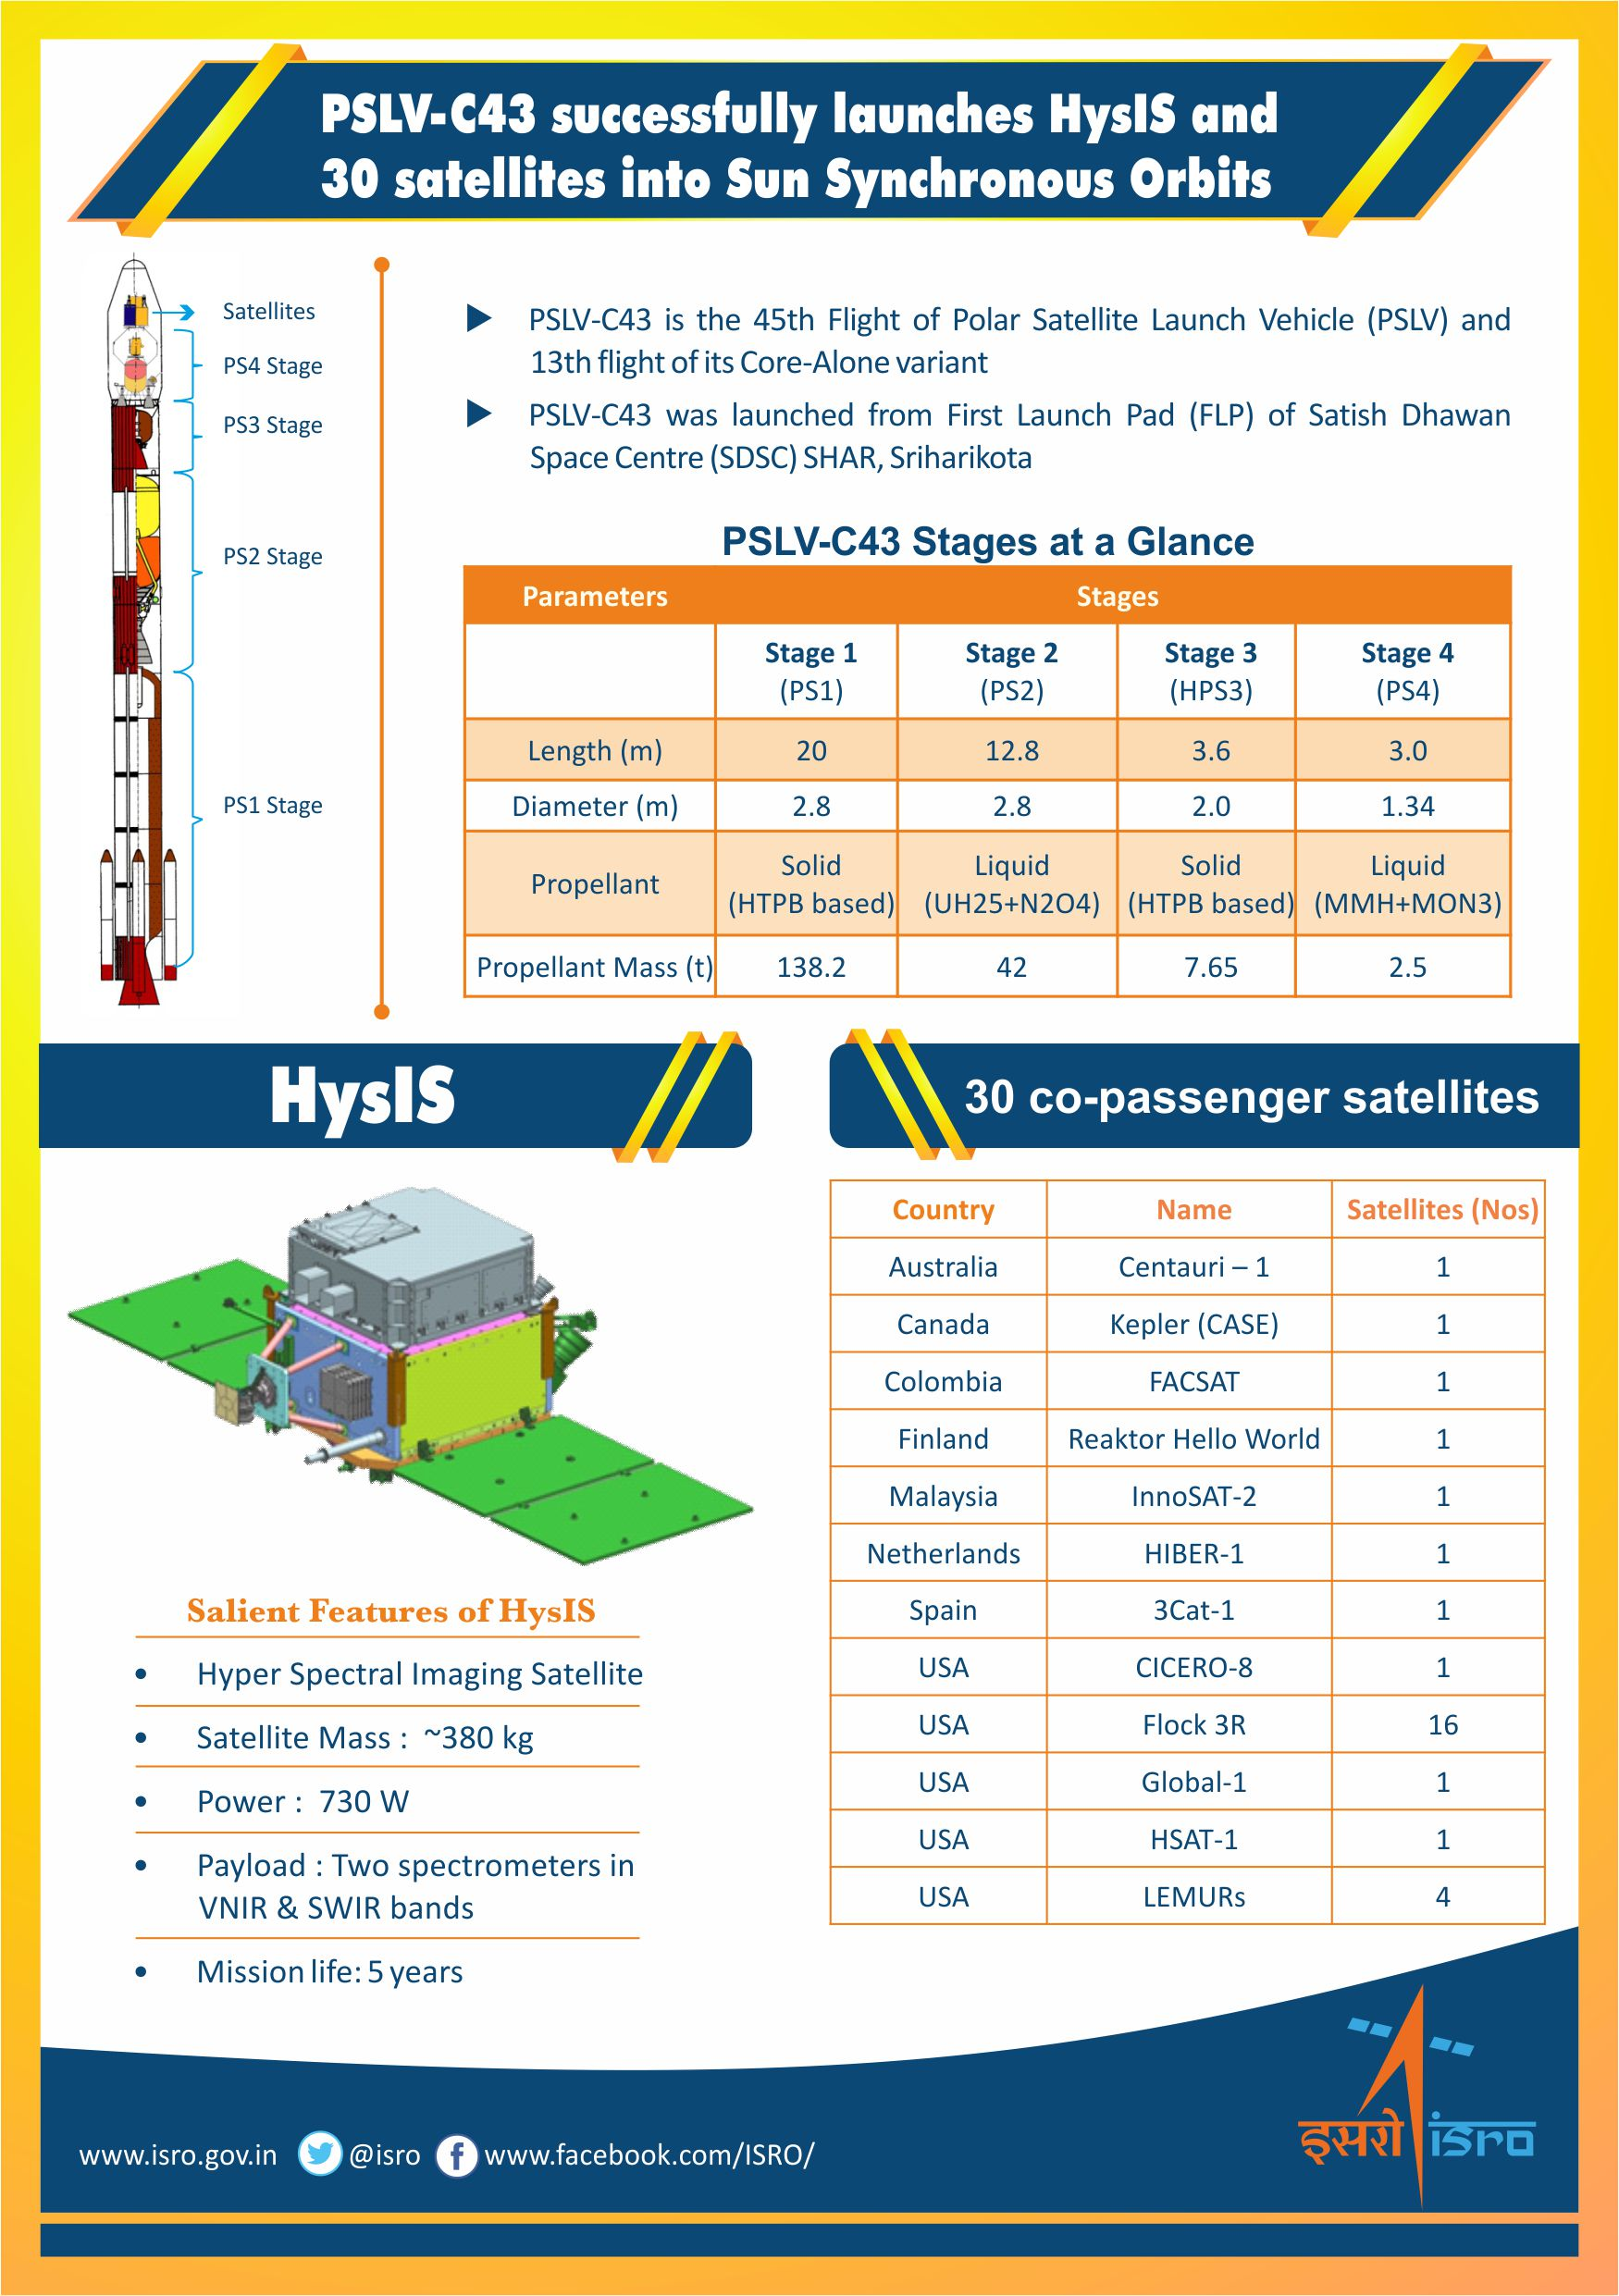 PSLV-C43 / HysIS Mission at a glance